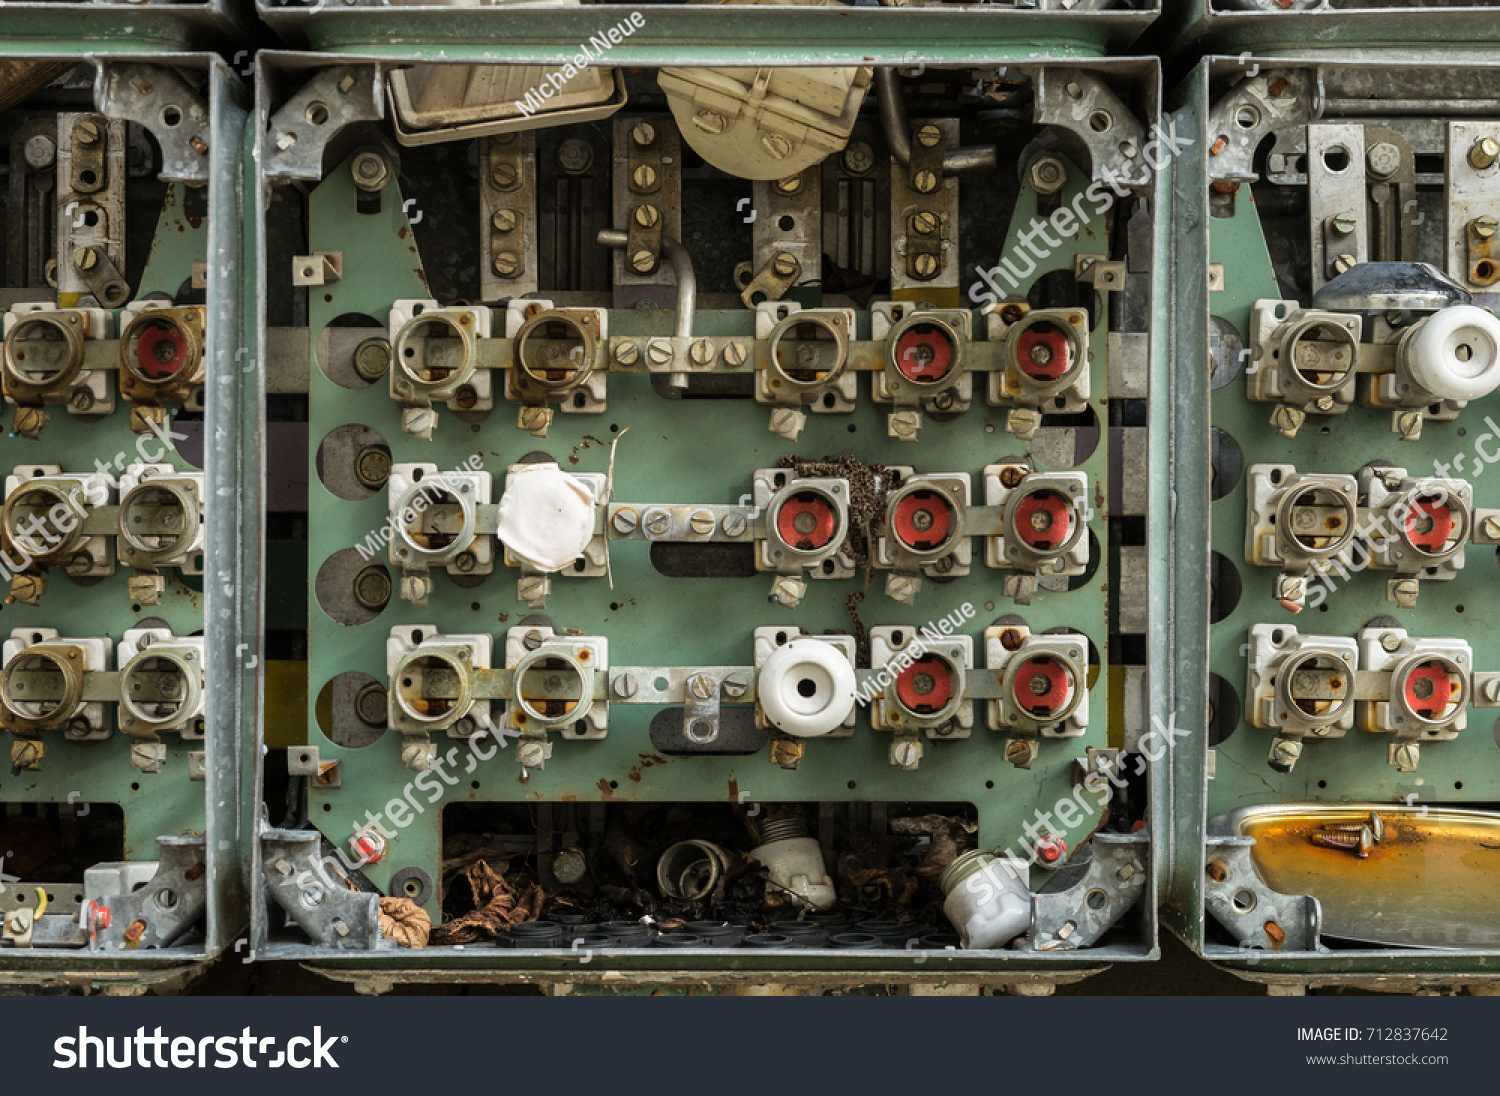 An old fuse box with cables and connectors